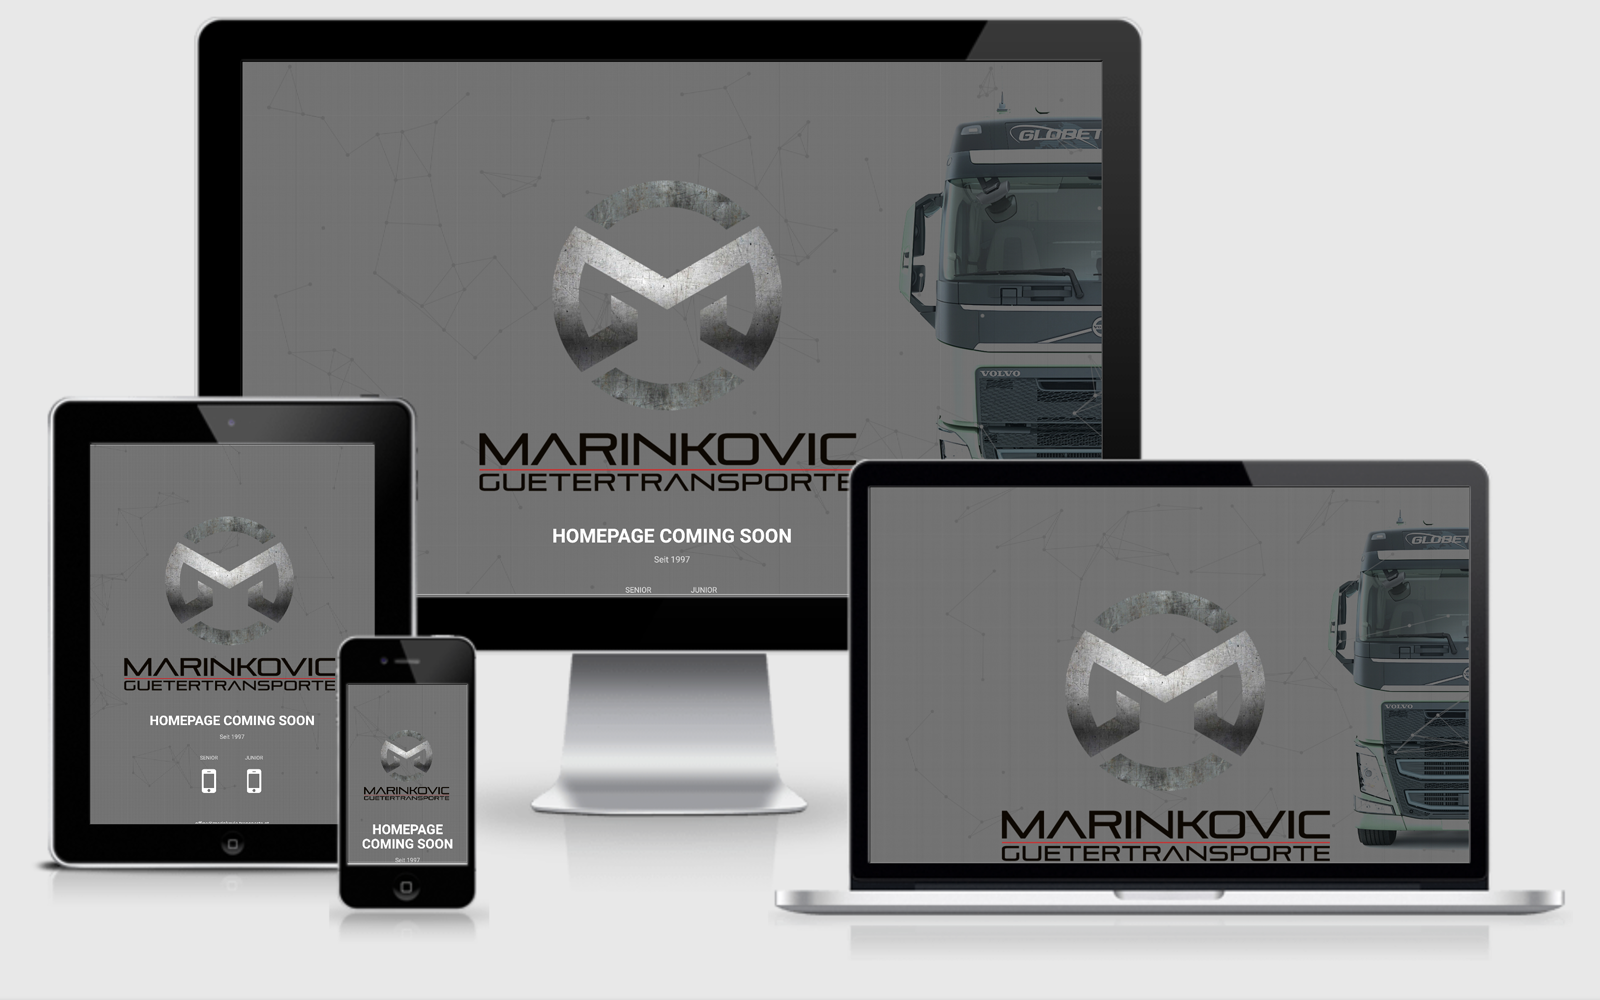 Marinkovic Transporte KG Homepage